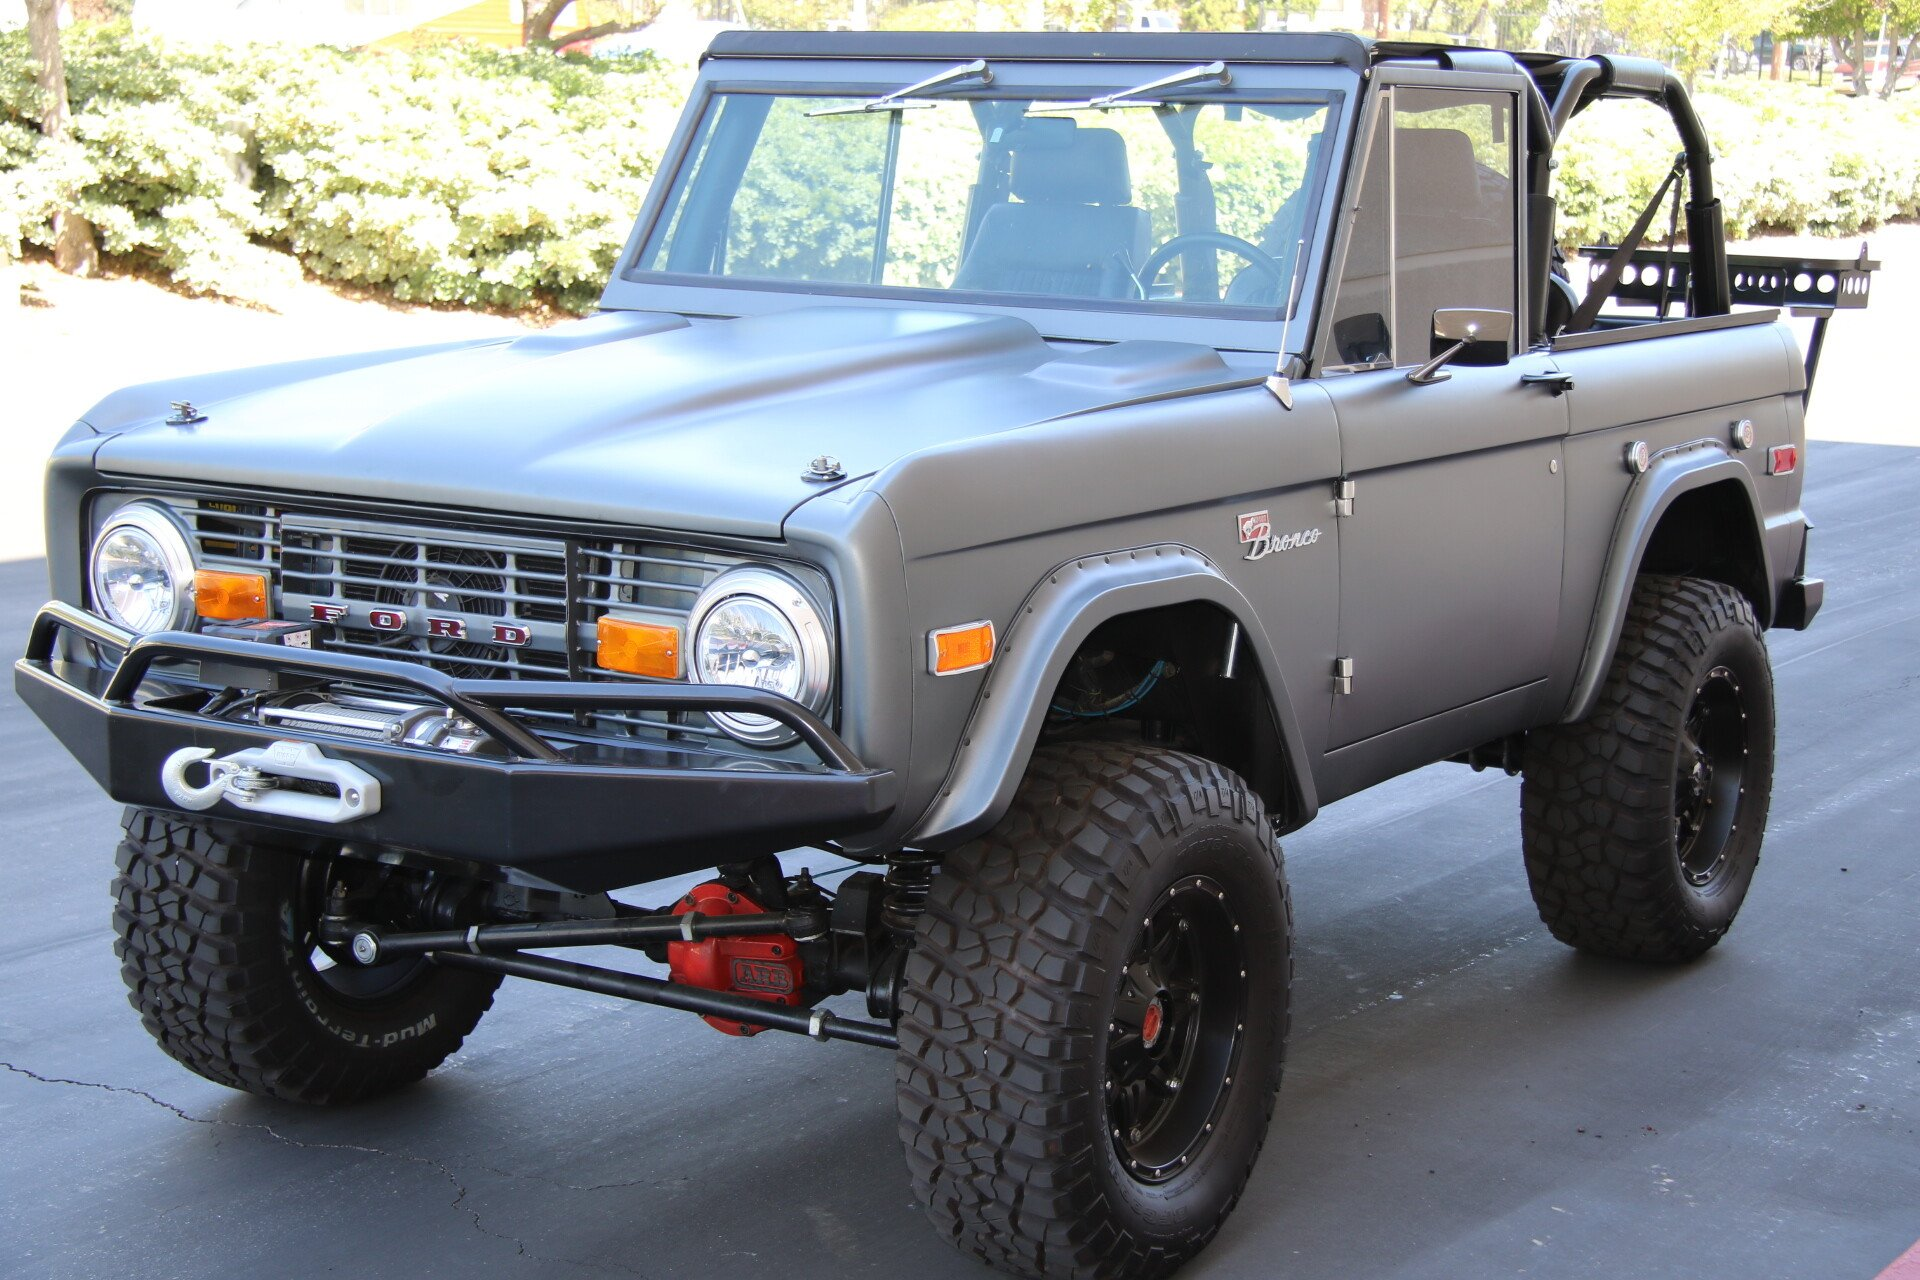 1960 Ford Bronco Ranger Wiring Diagrams 1969 Xlt Classics For Sale On Autotrader Rh Com 1974